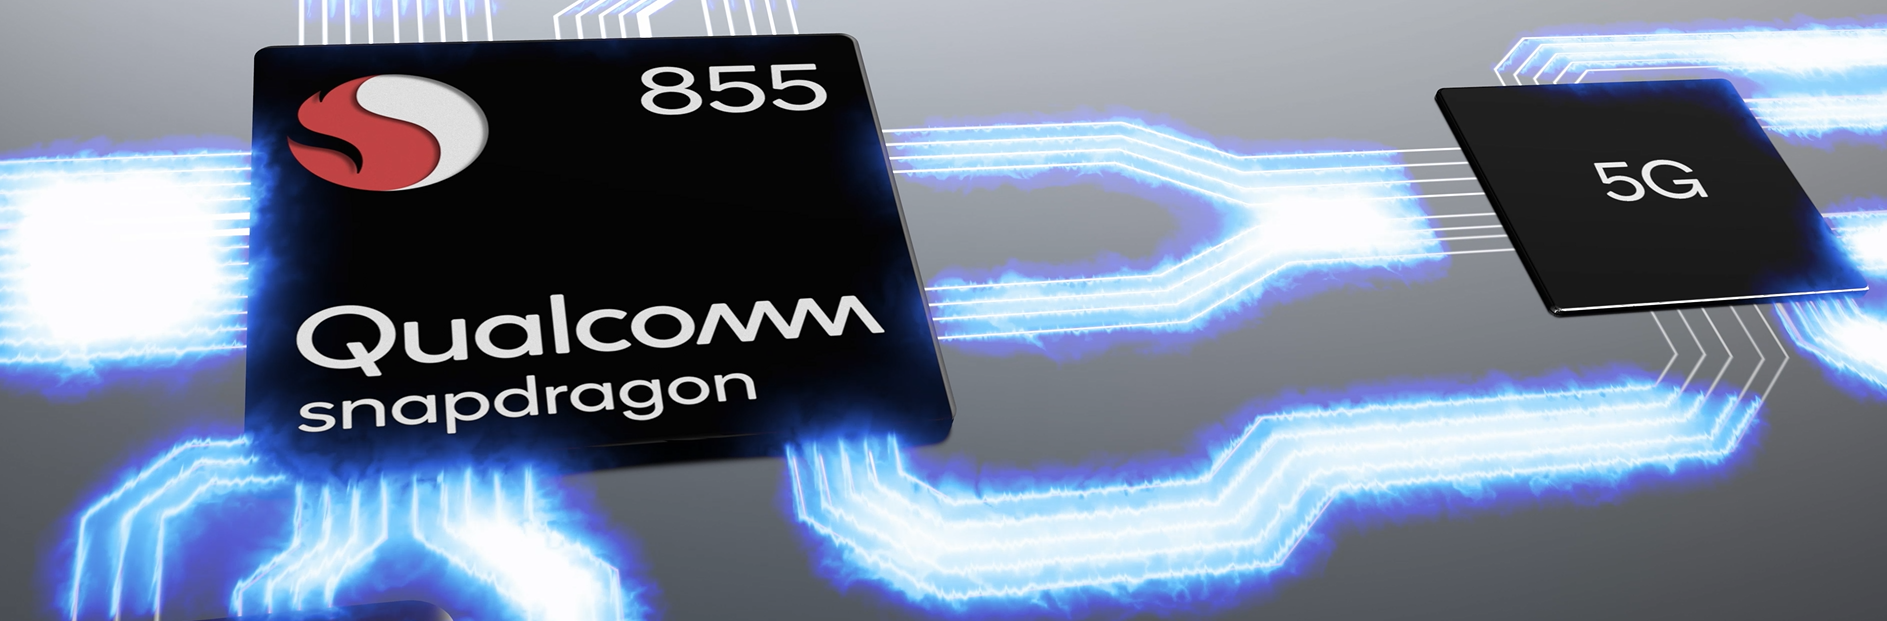 Qualcomm's Snapdragon 855 Will Be The 5G CPU For Android In 2019